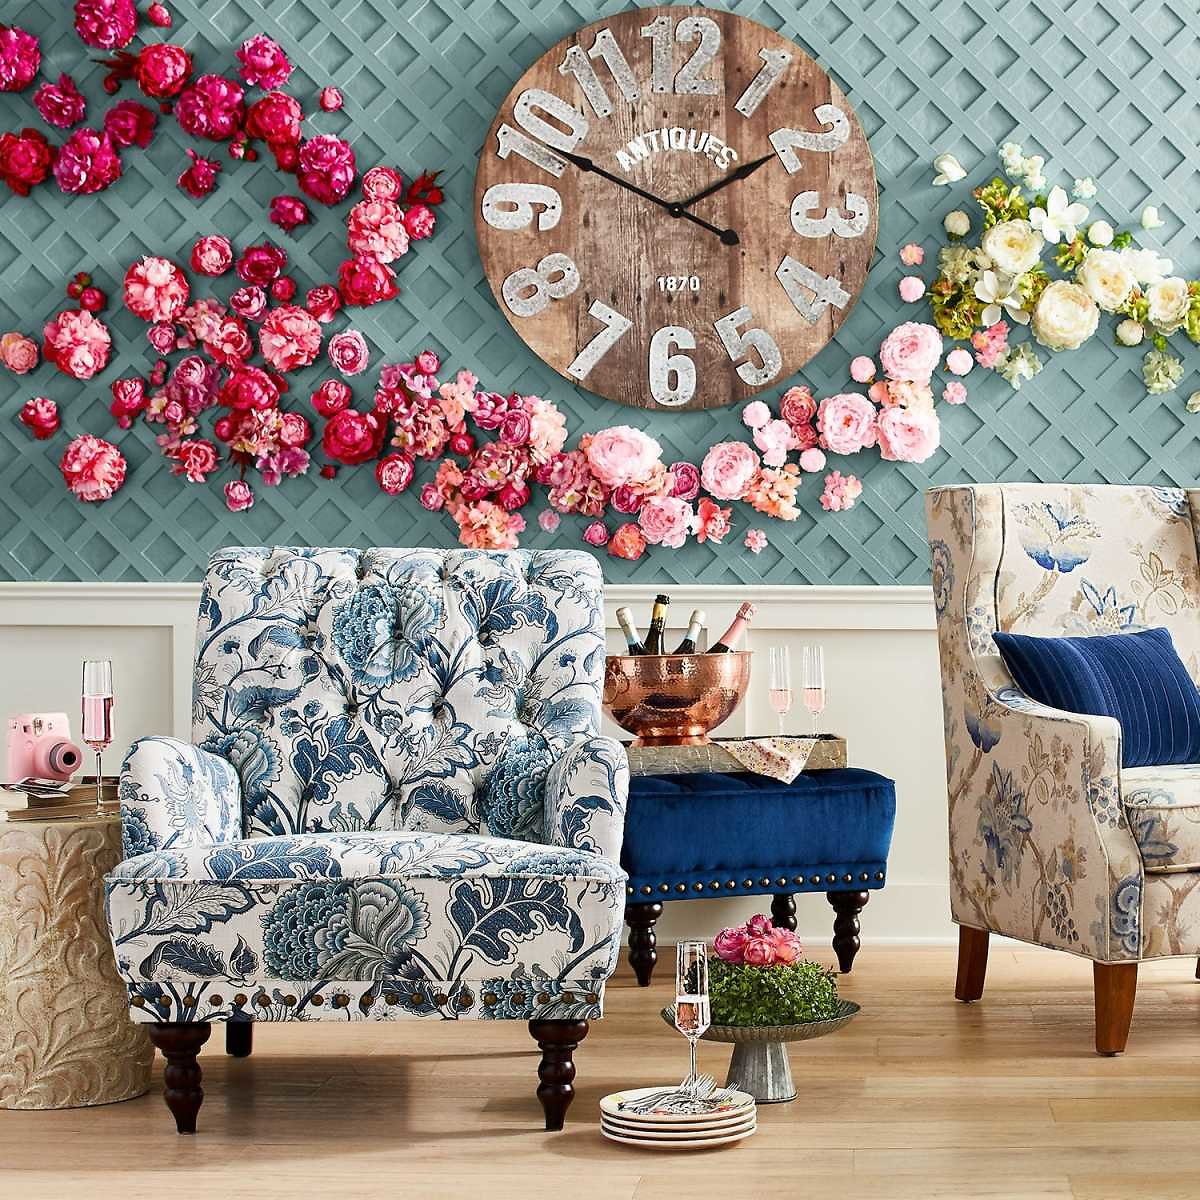 Up to 50% Off Pier1 Going Out of Business Sale (Retail Stores)